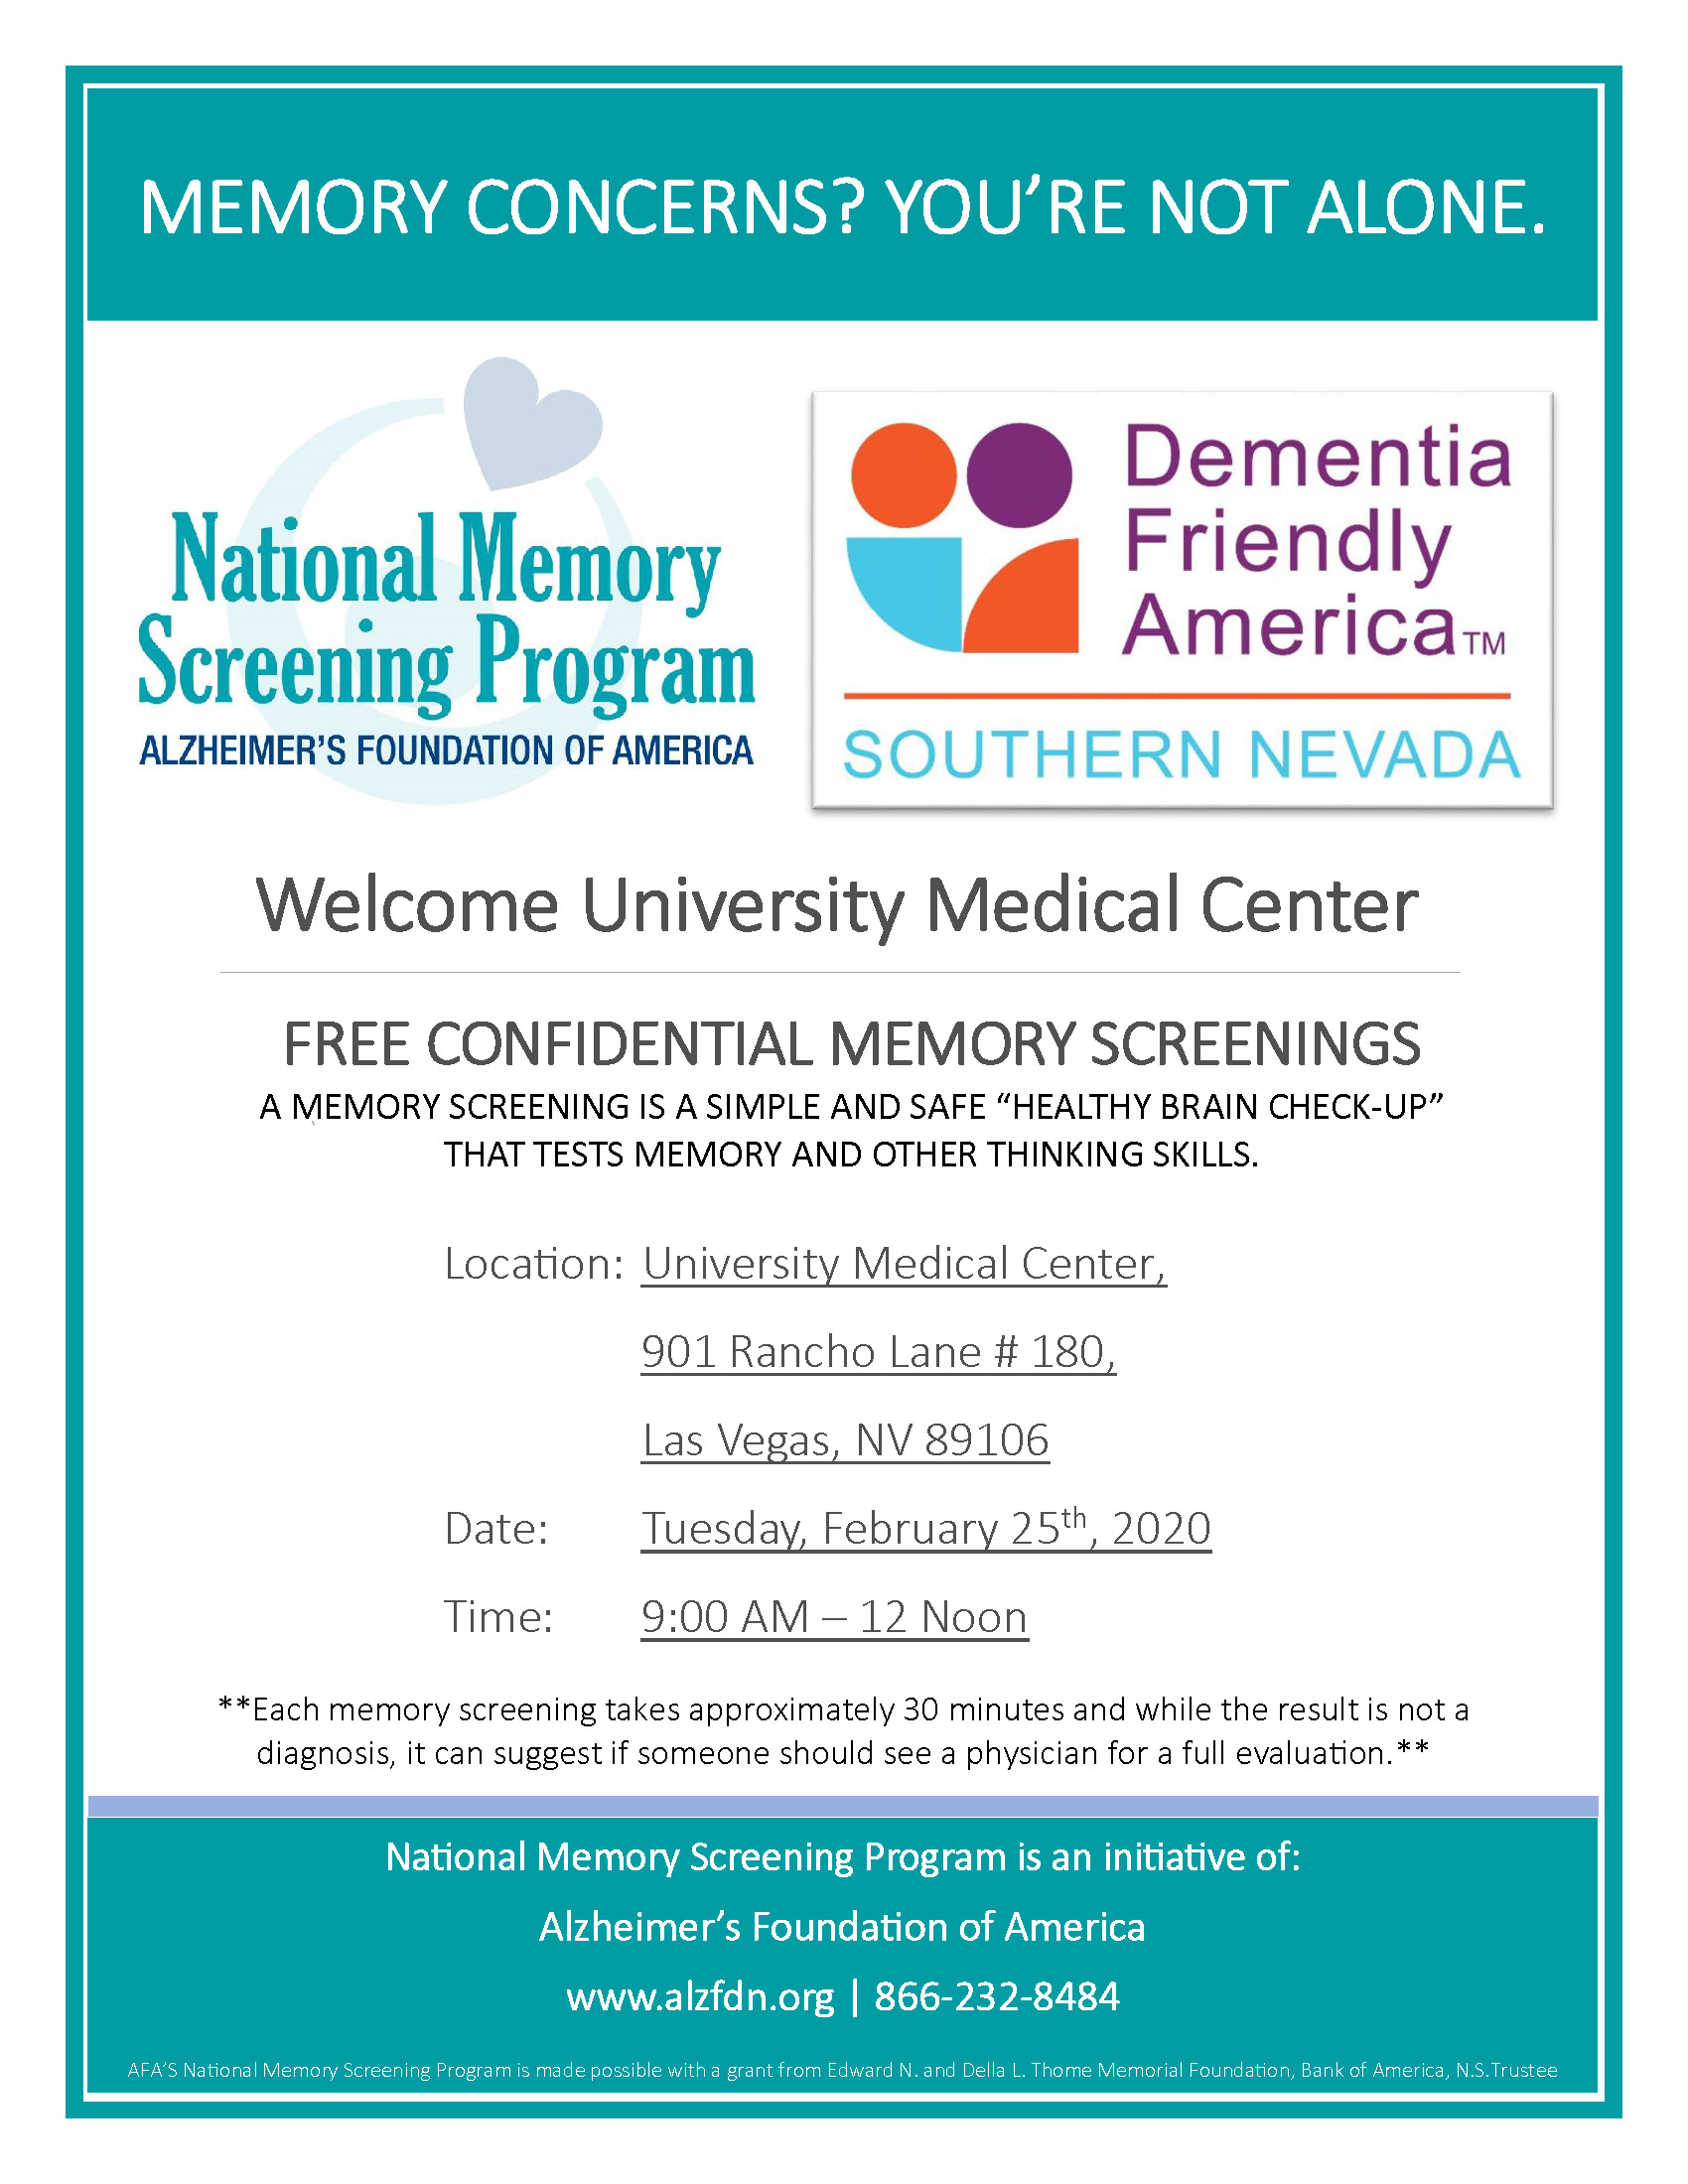 Cleveland Clinic Memory Screening Event